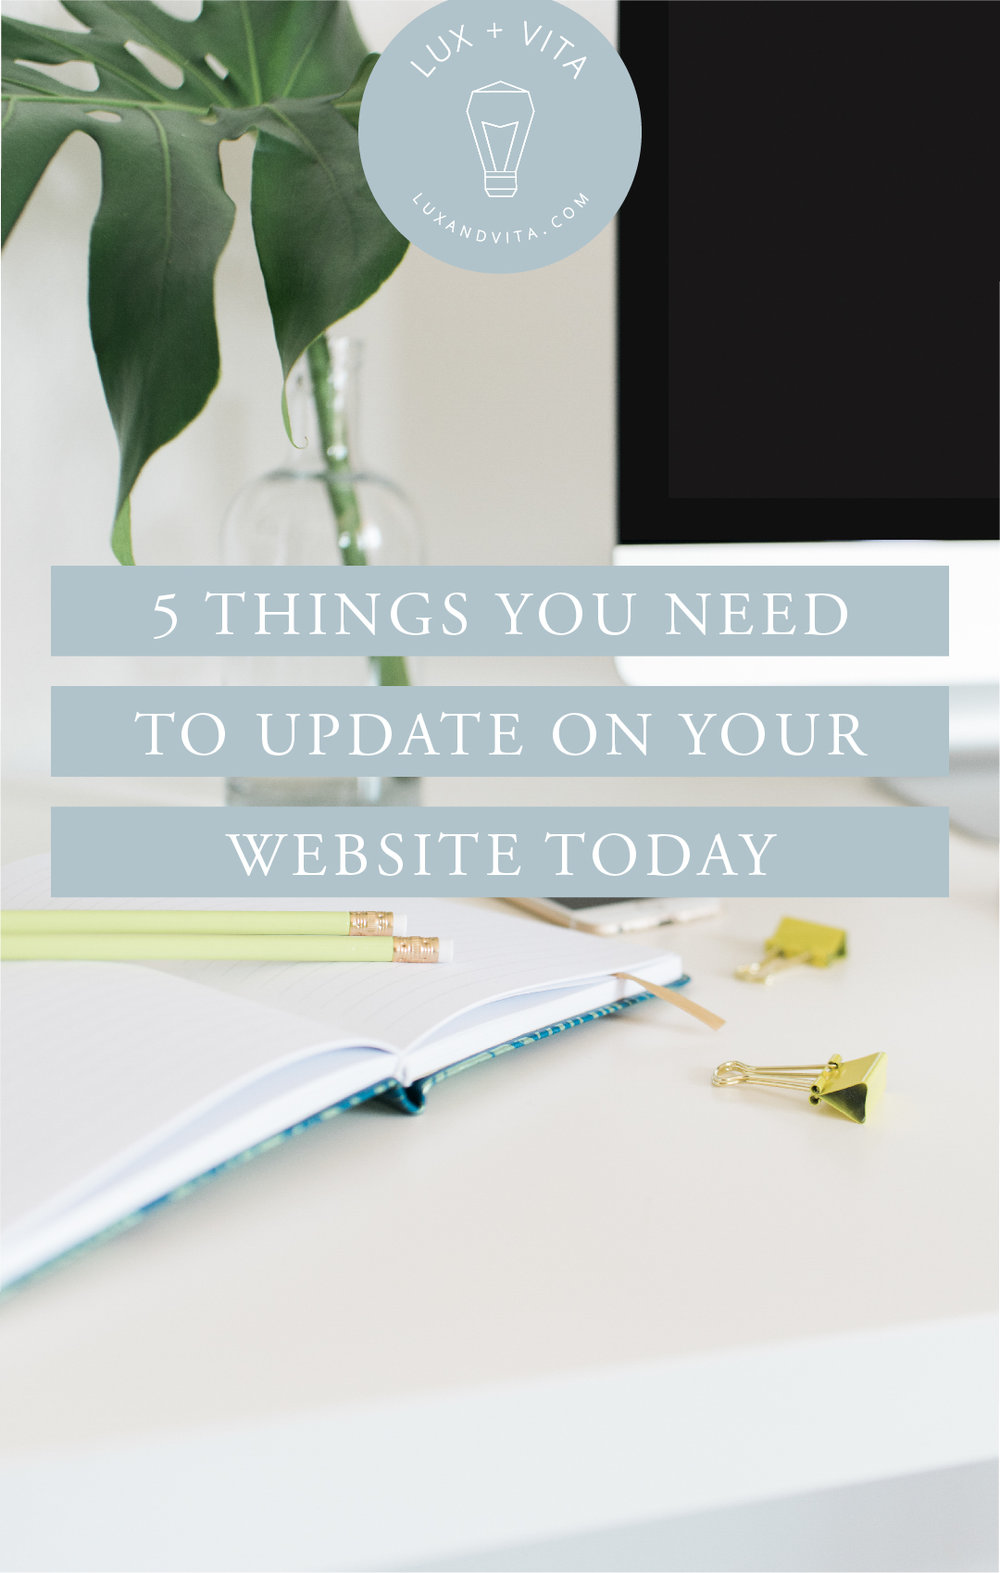 5 things to update on your website today